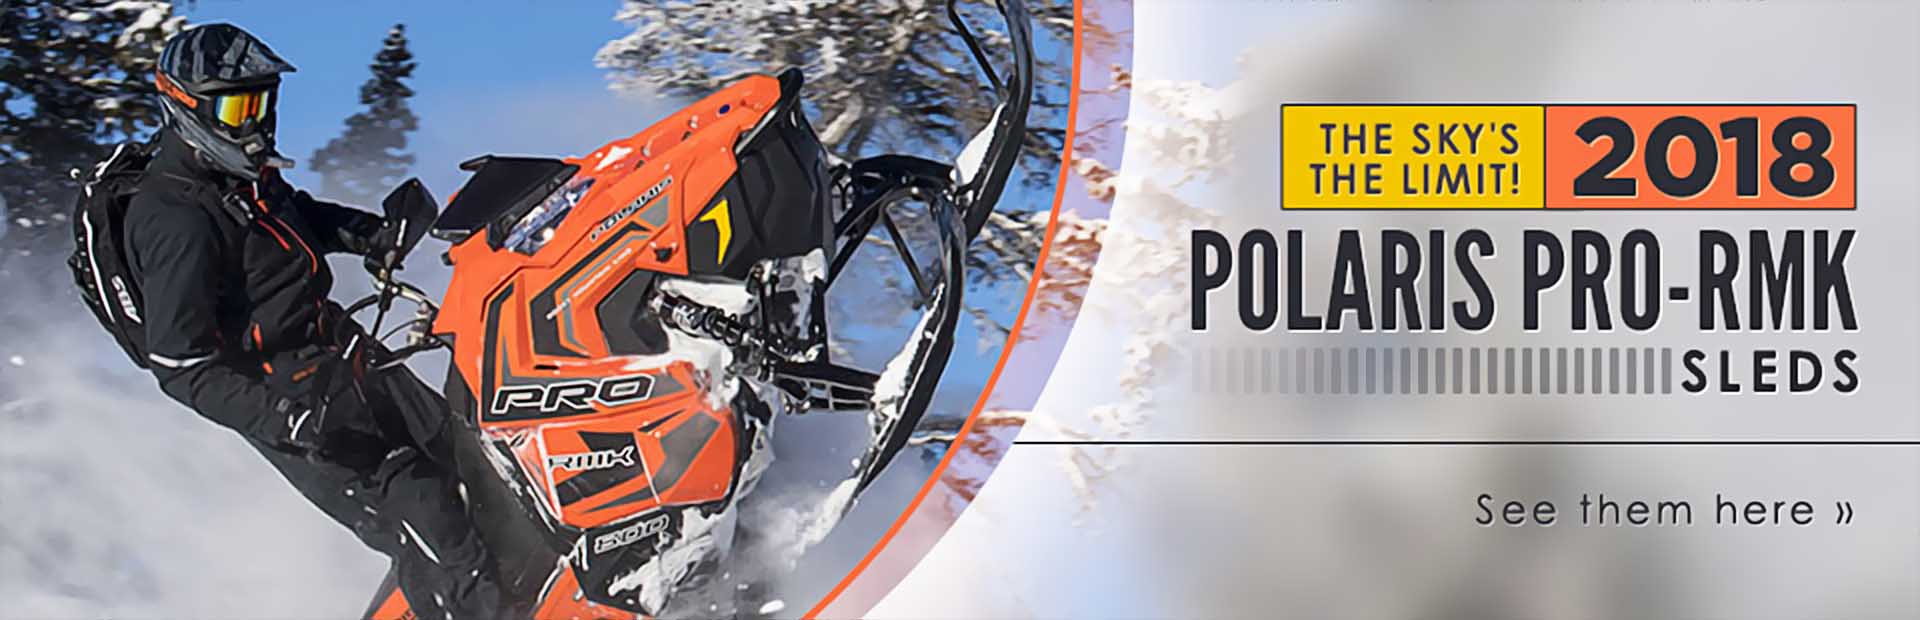 2018 Polaris PRO-RMK Sleds: Click here to view the models.